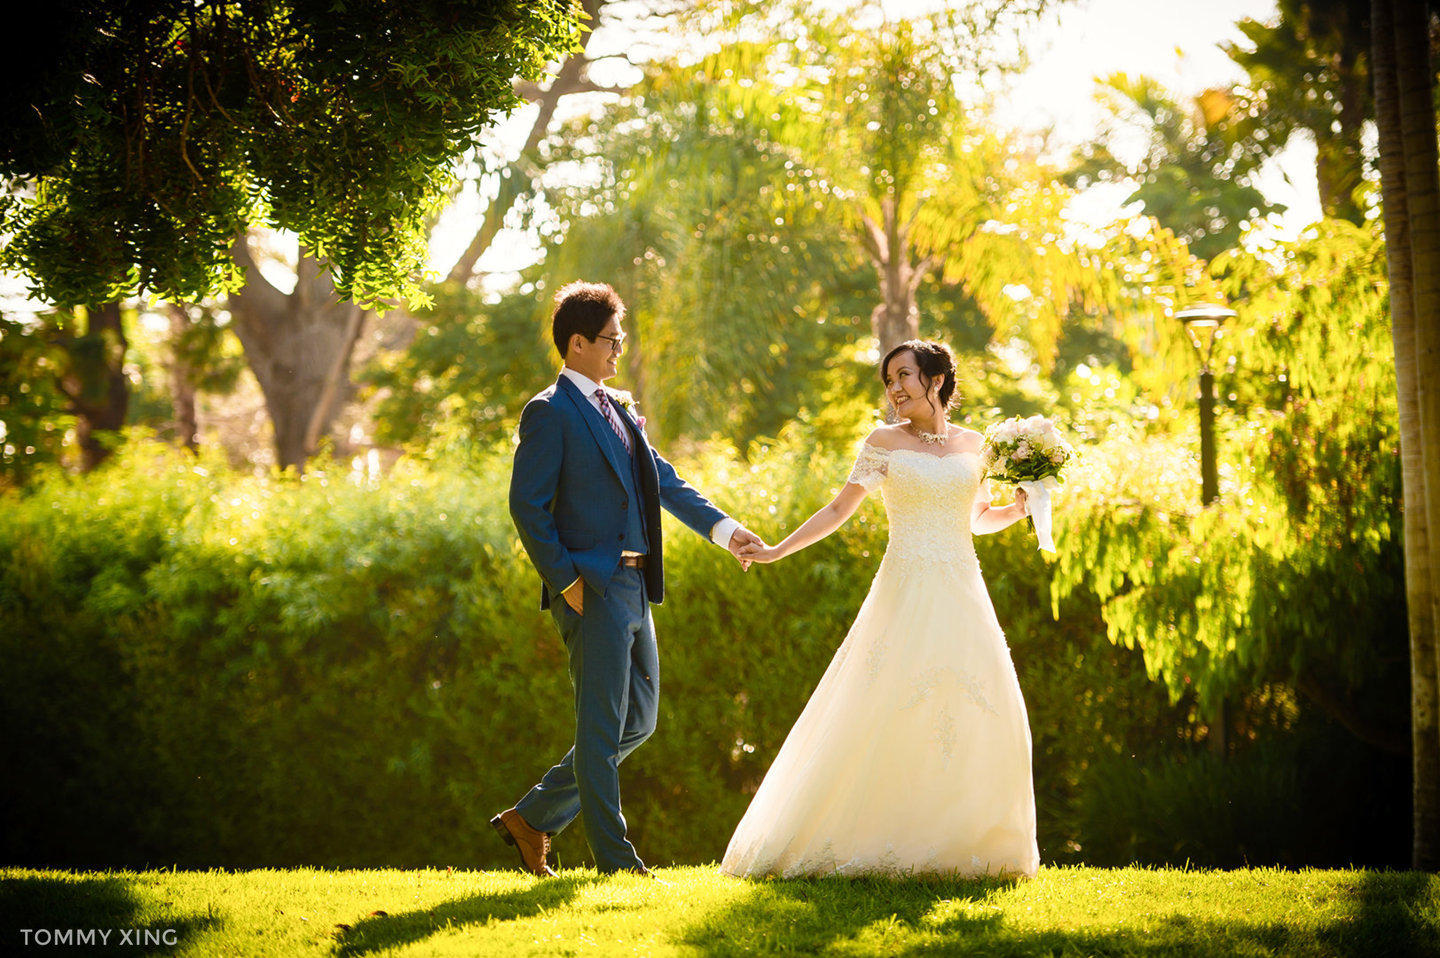 Paradise Point Resort Wedding Xiaolu & Bin San Diego 圣地亚哥婚礼摄影跟拍 Tommy Xing Photography 洛杉矶婚礼婚纱照摄影师 078.jpg